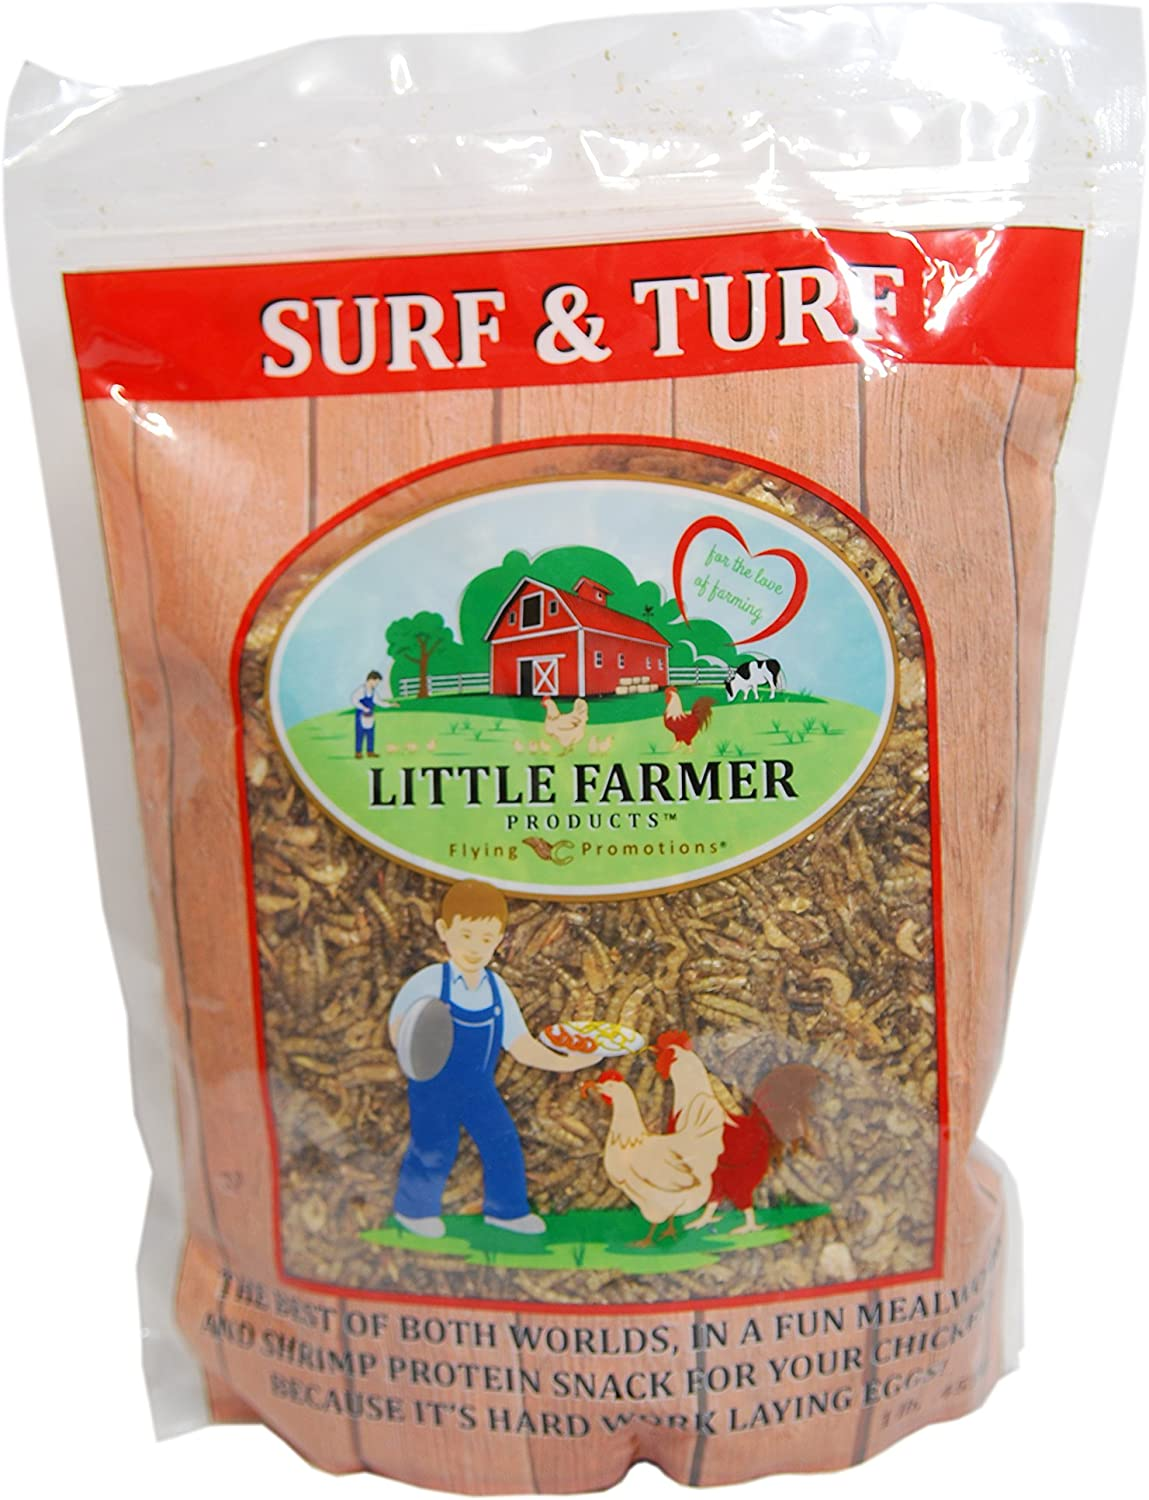 LITTLE FARMER PRODUCTS Surf & Turf | Dried River Shrimp & Mealworm Chicken Treat Premium Poultry Mix | 1 lb